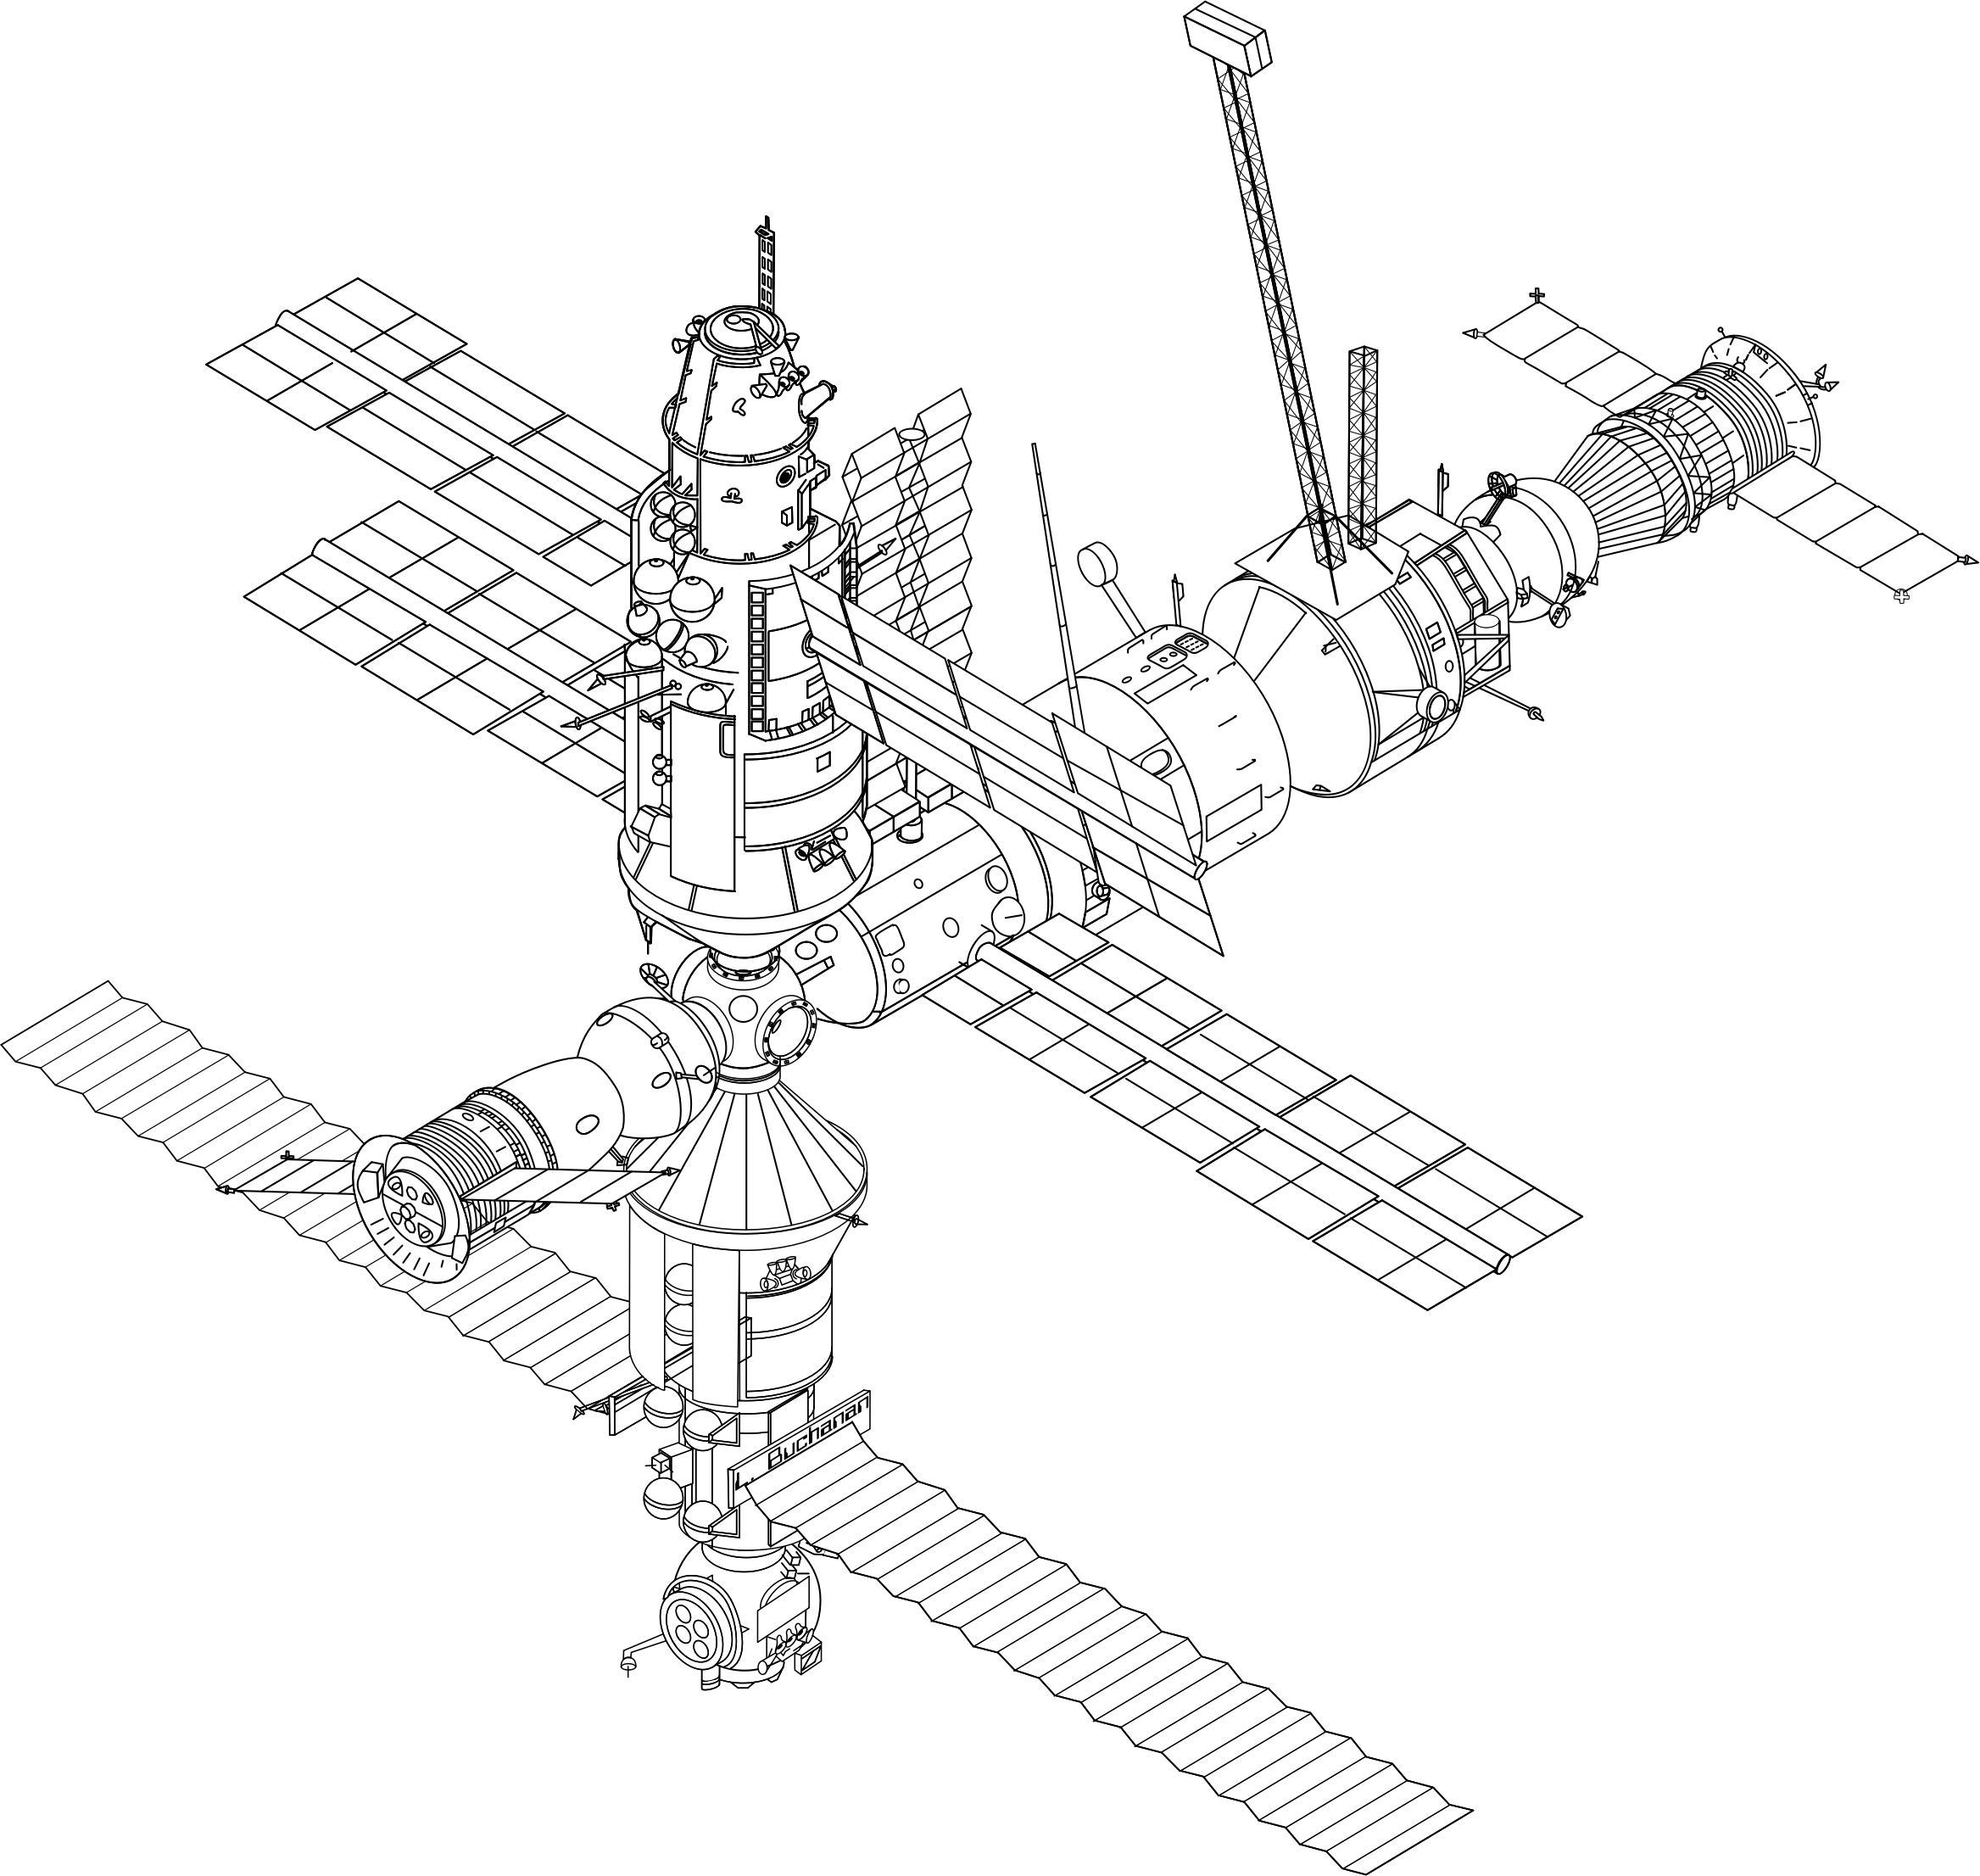 Mir Space Station Sketch Vector Clipart Image